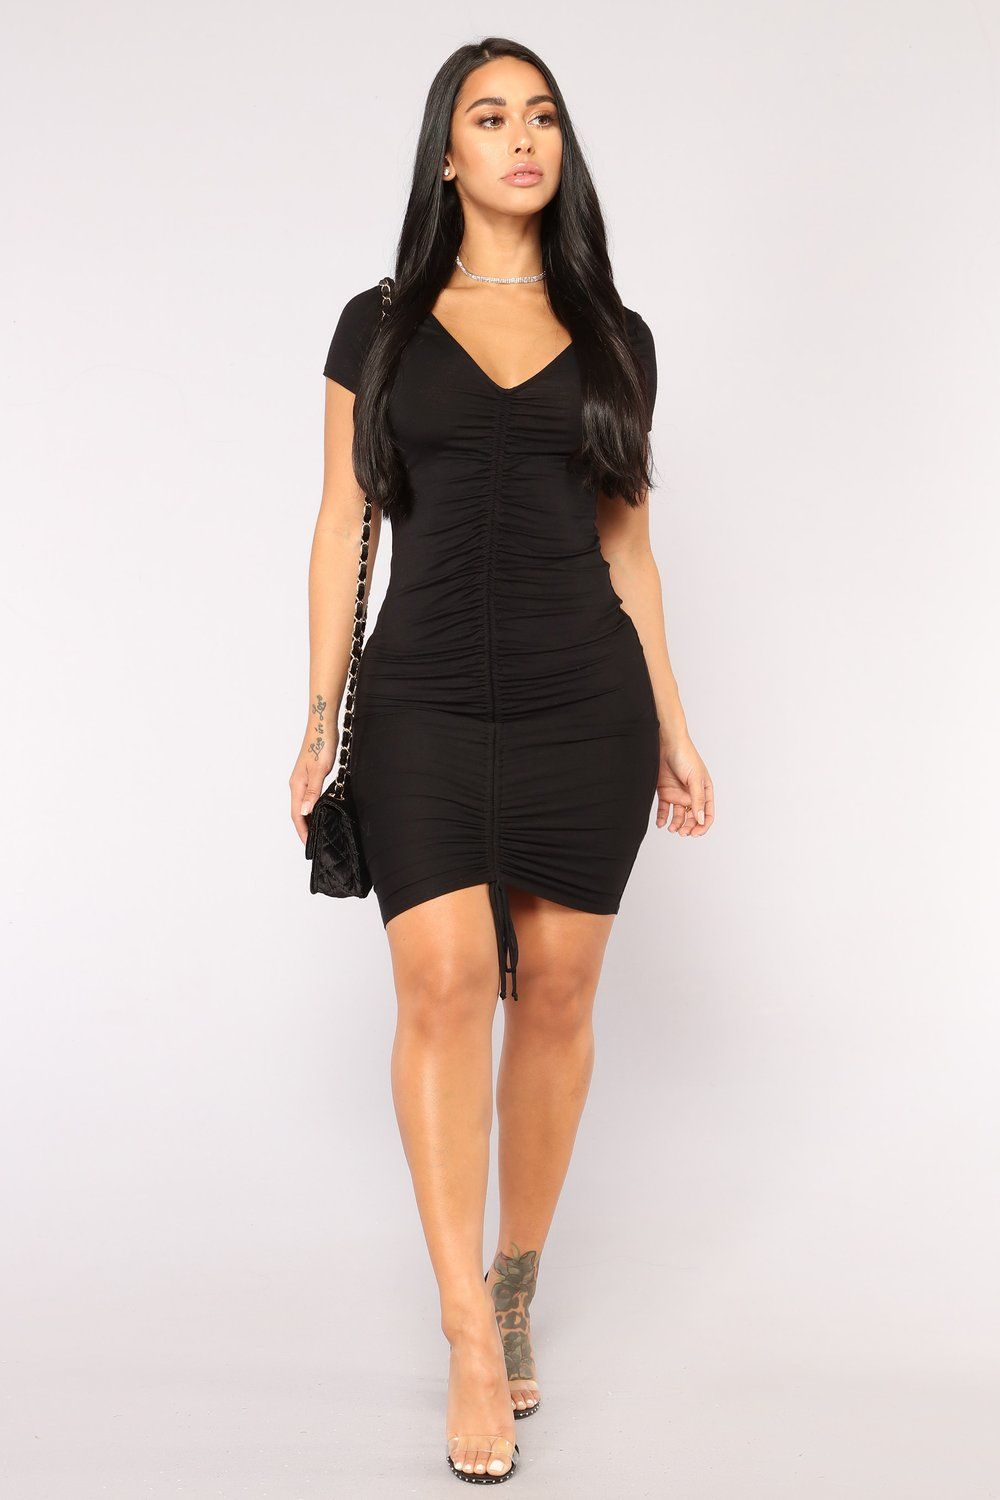 536c82952bc Forbidden City Ruched Dress - Black in 2019 | LBD♧ | Dresses ...